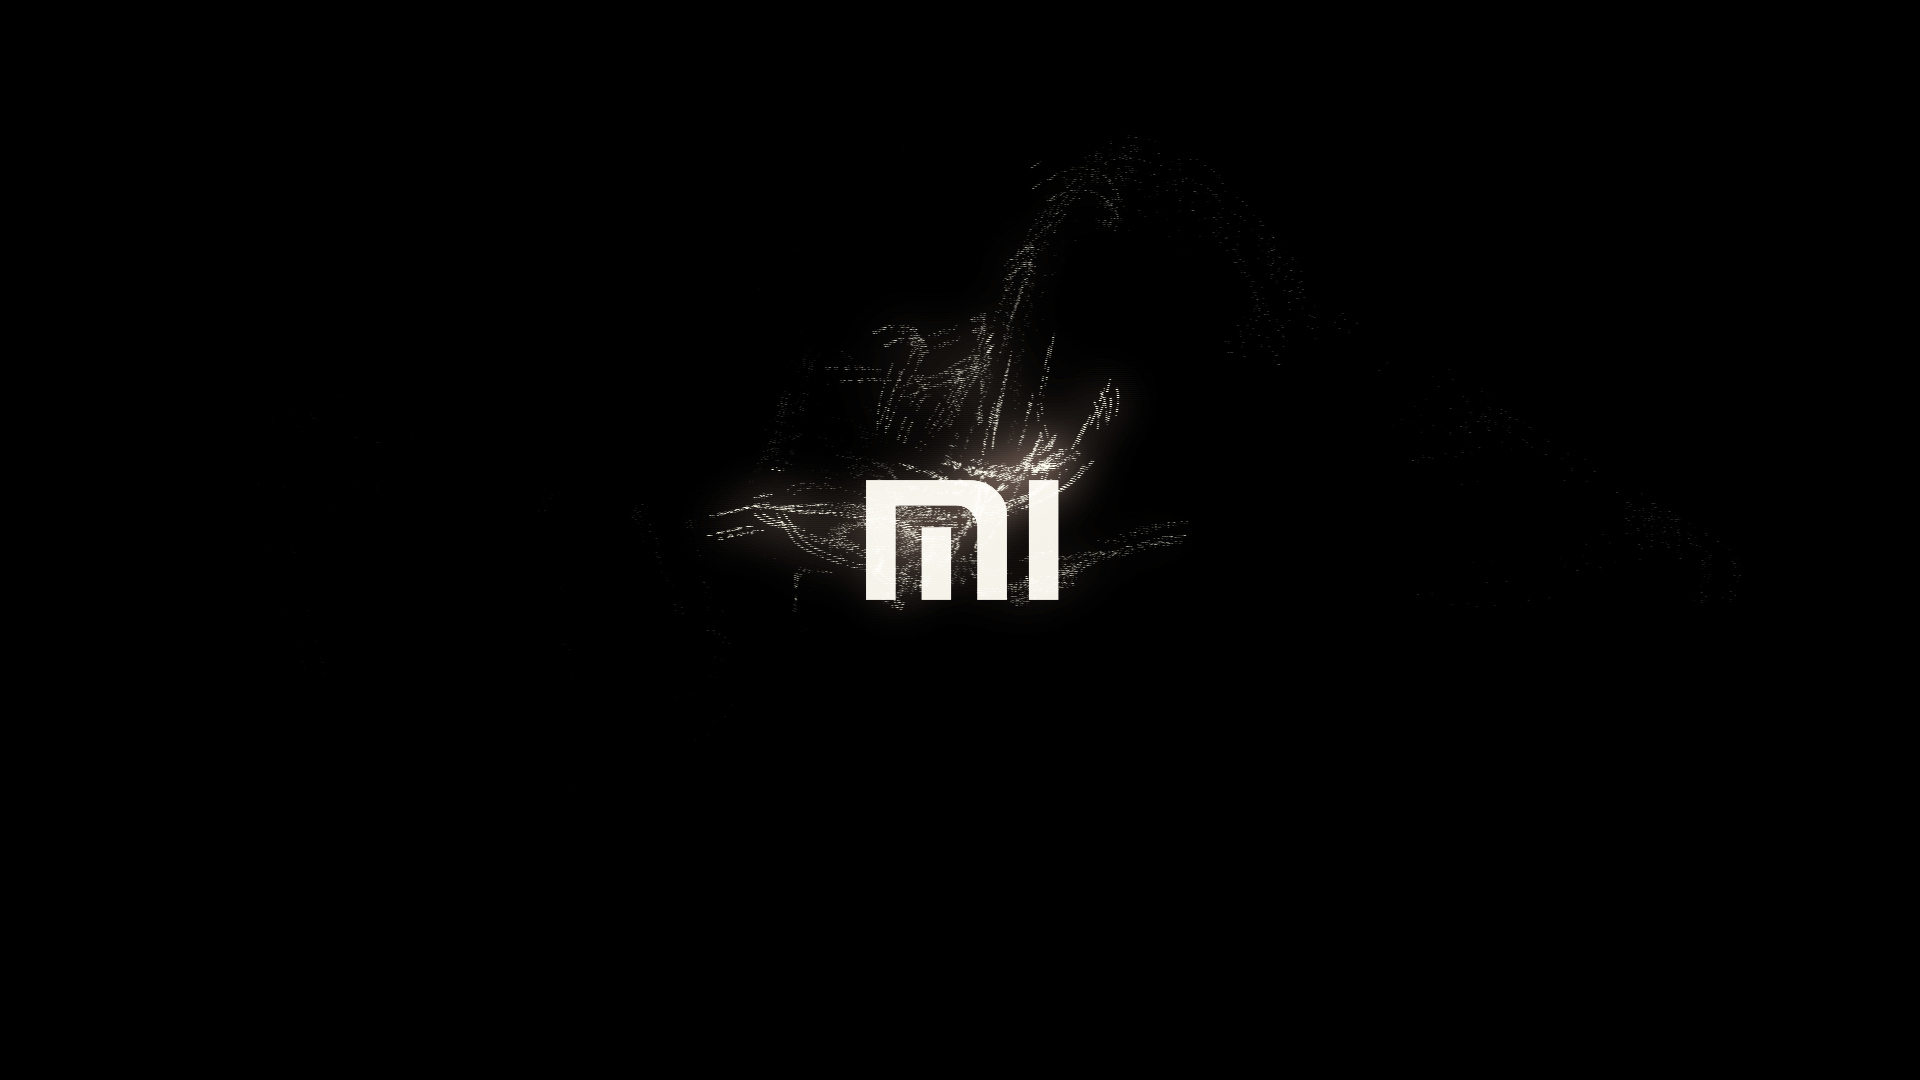 xiaomi MI logo animation made in fusion particles by fan ...